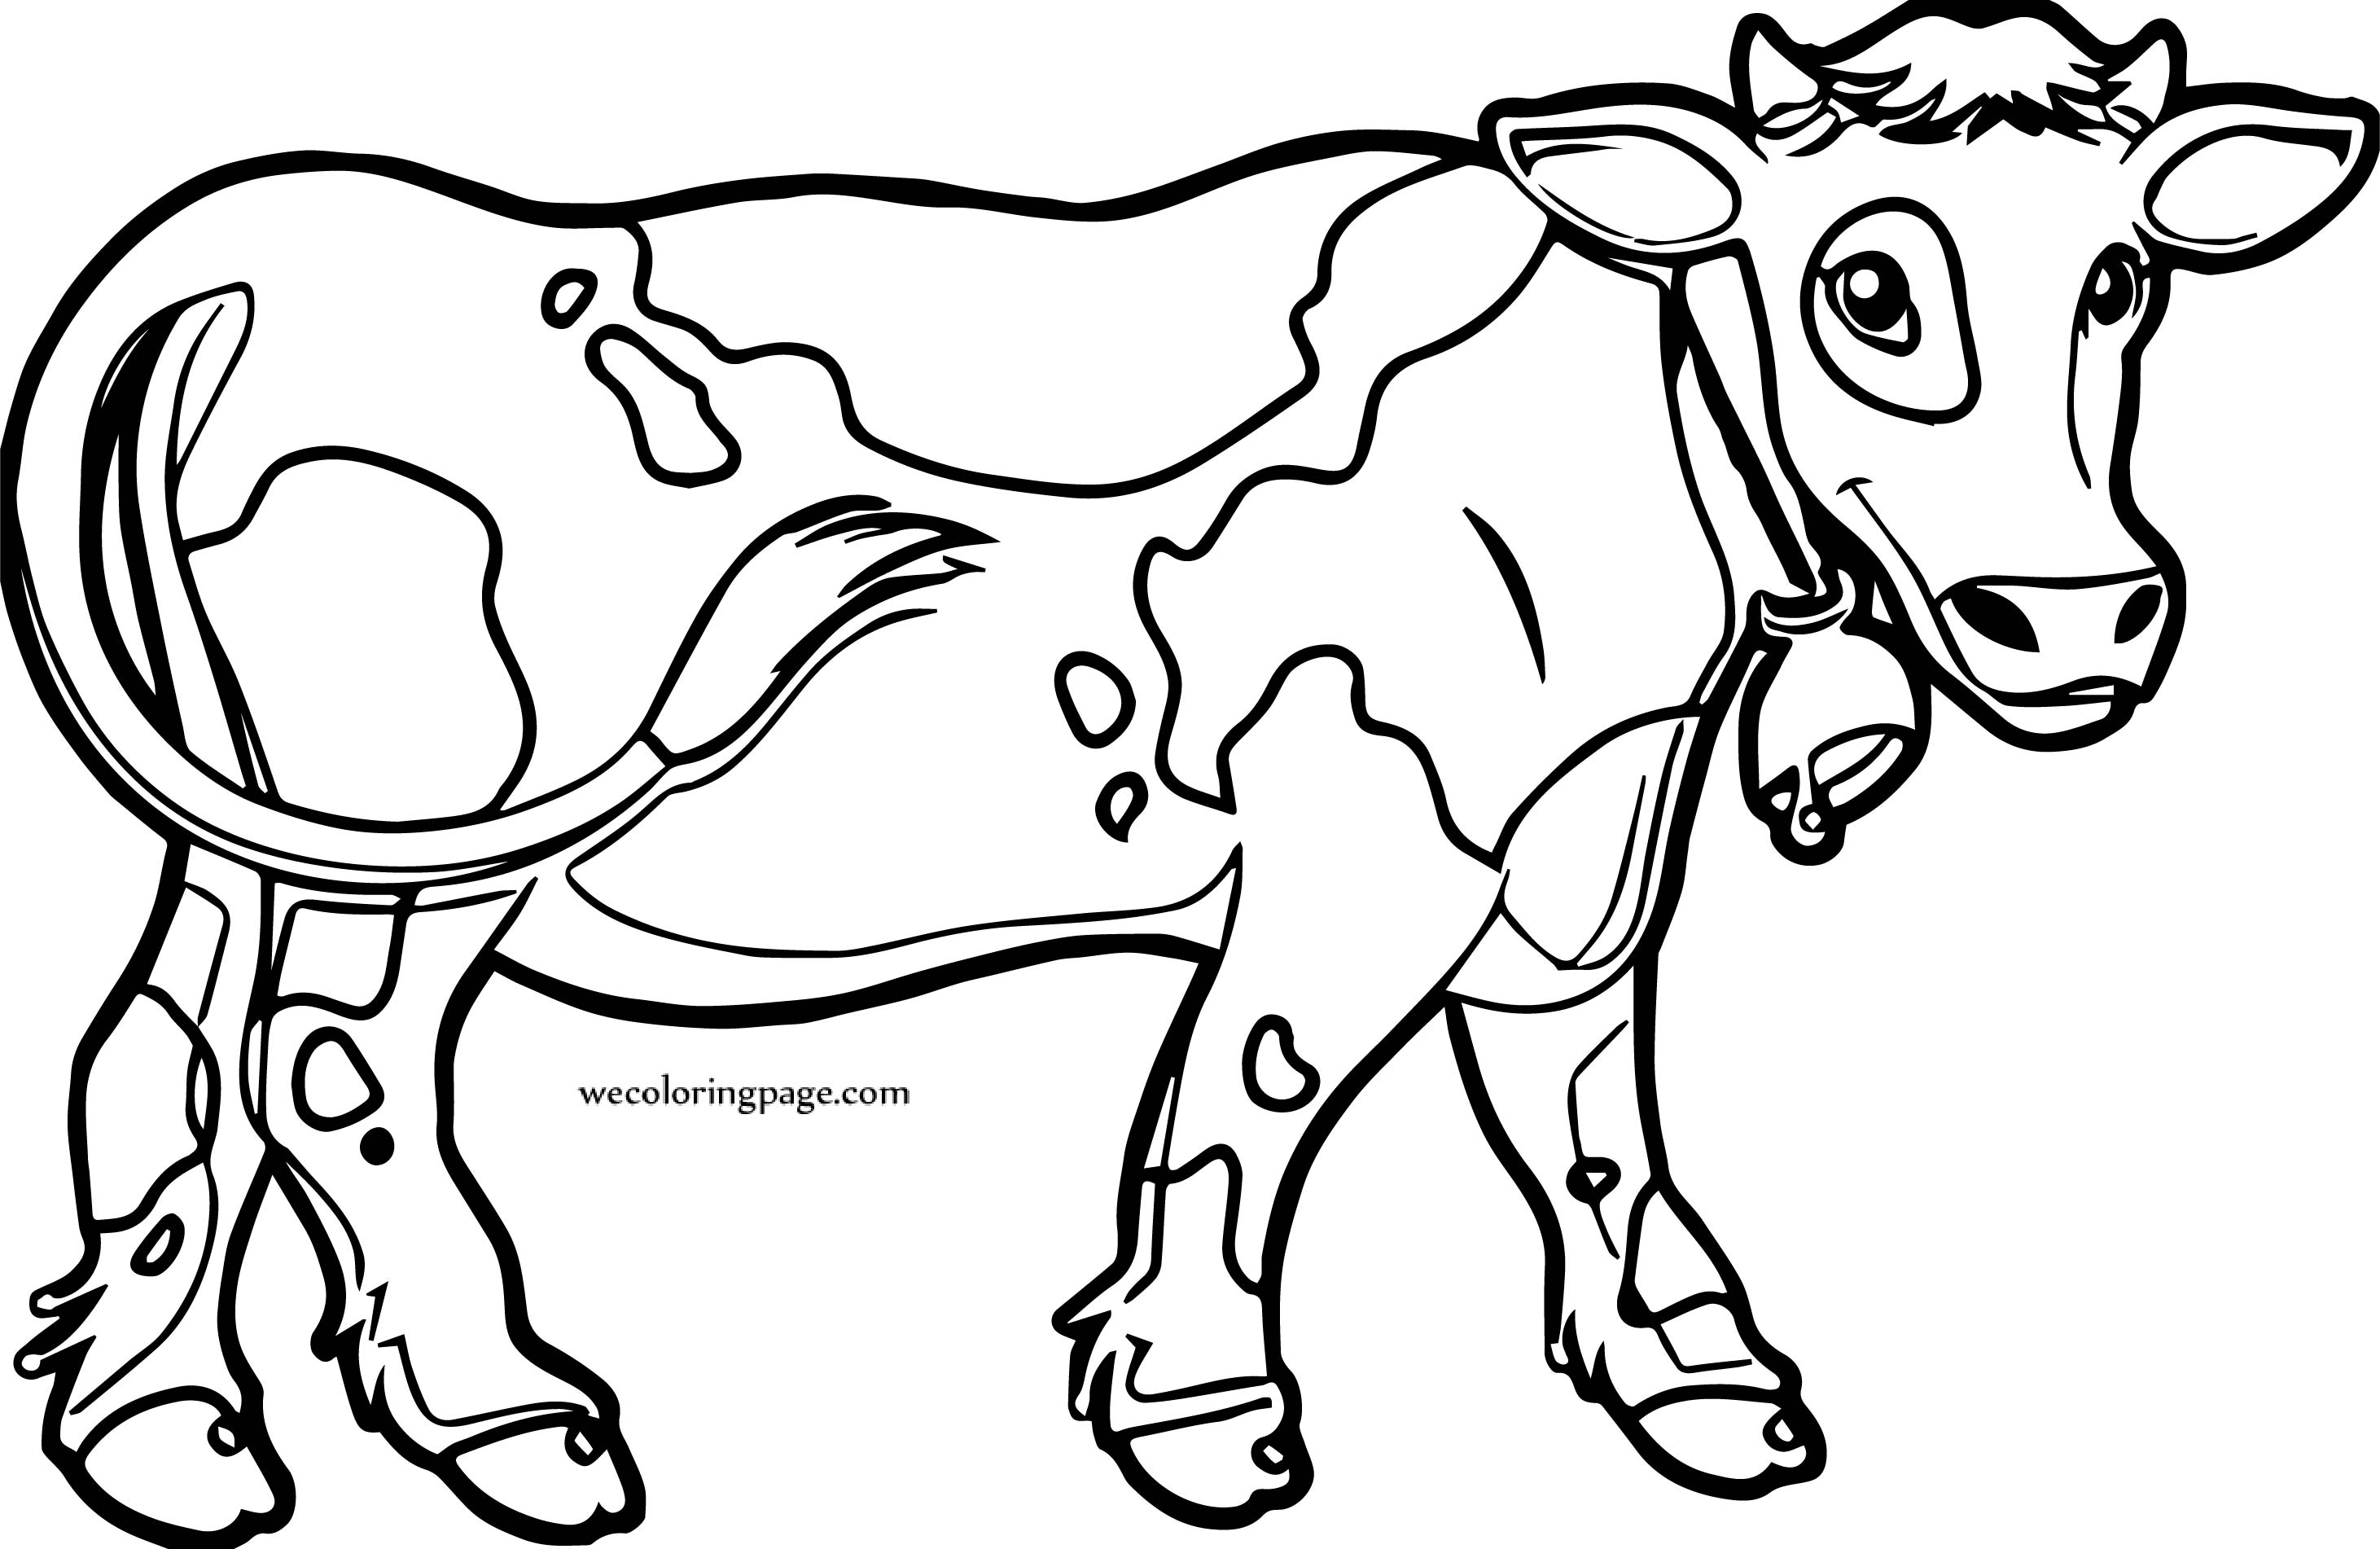 Cow Links Cow Images Coloring Page